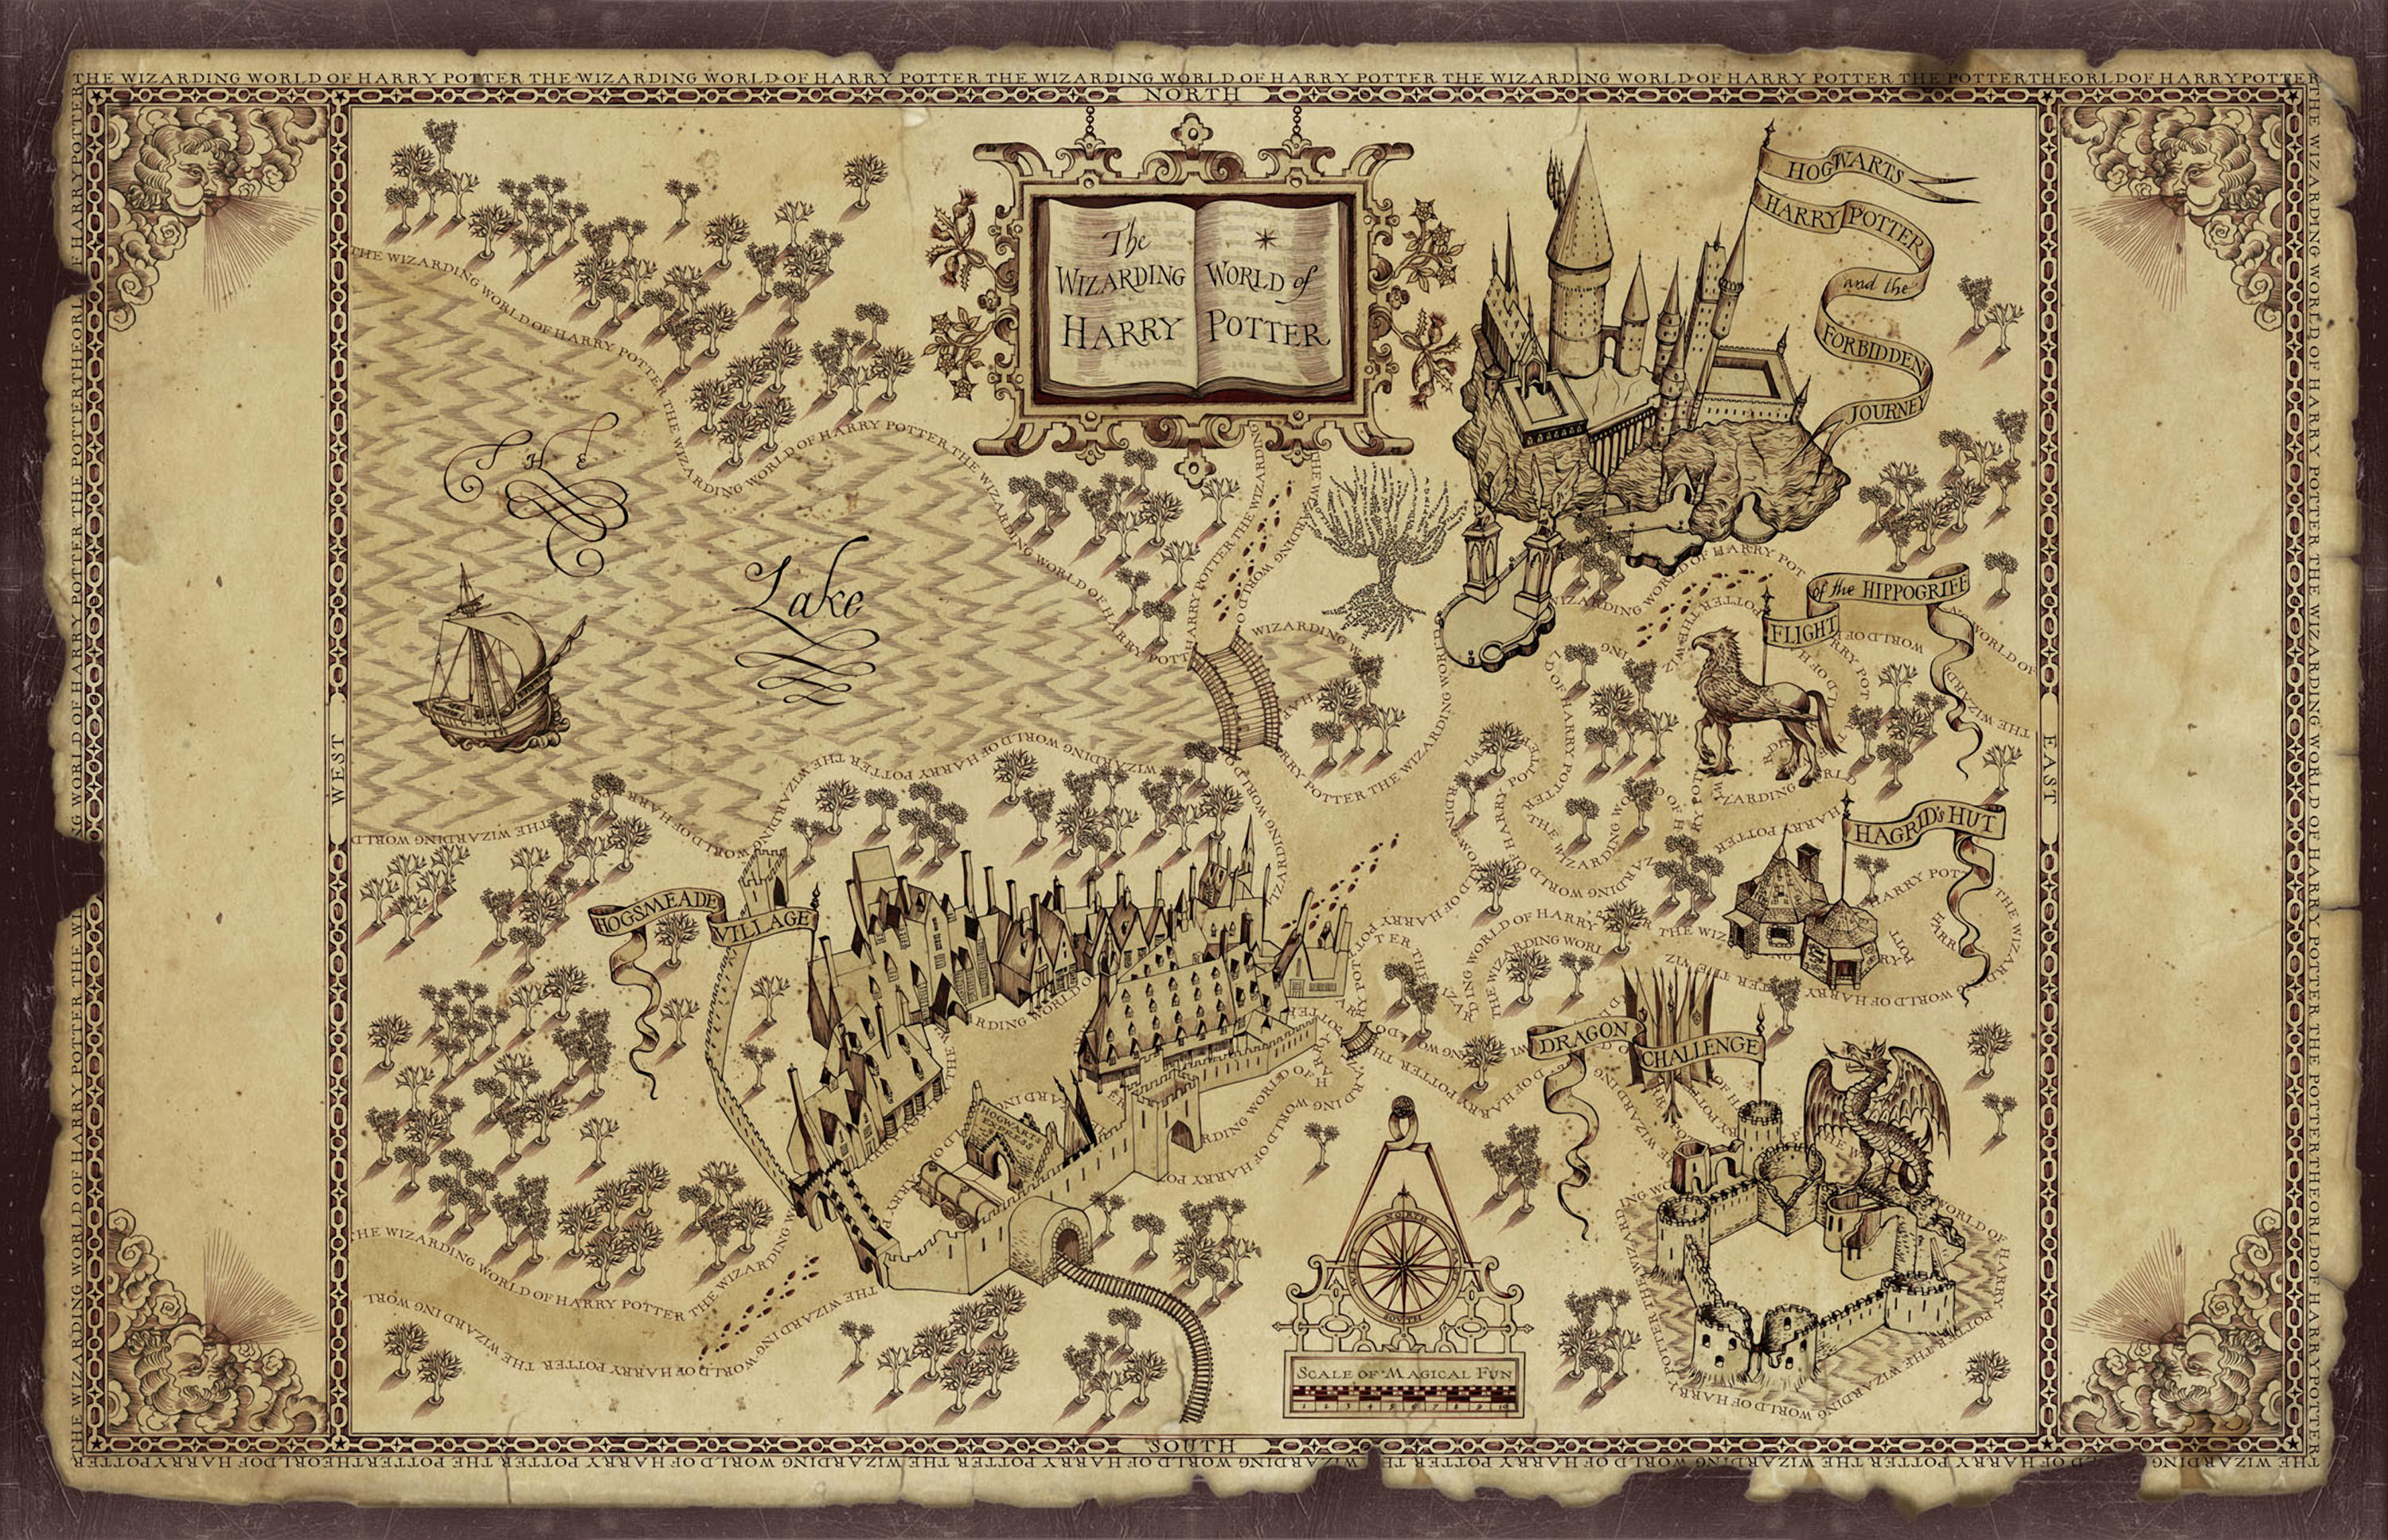 Wizarding_World_of_Harry_Potter_Map_1344x1774px